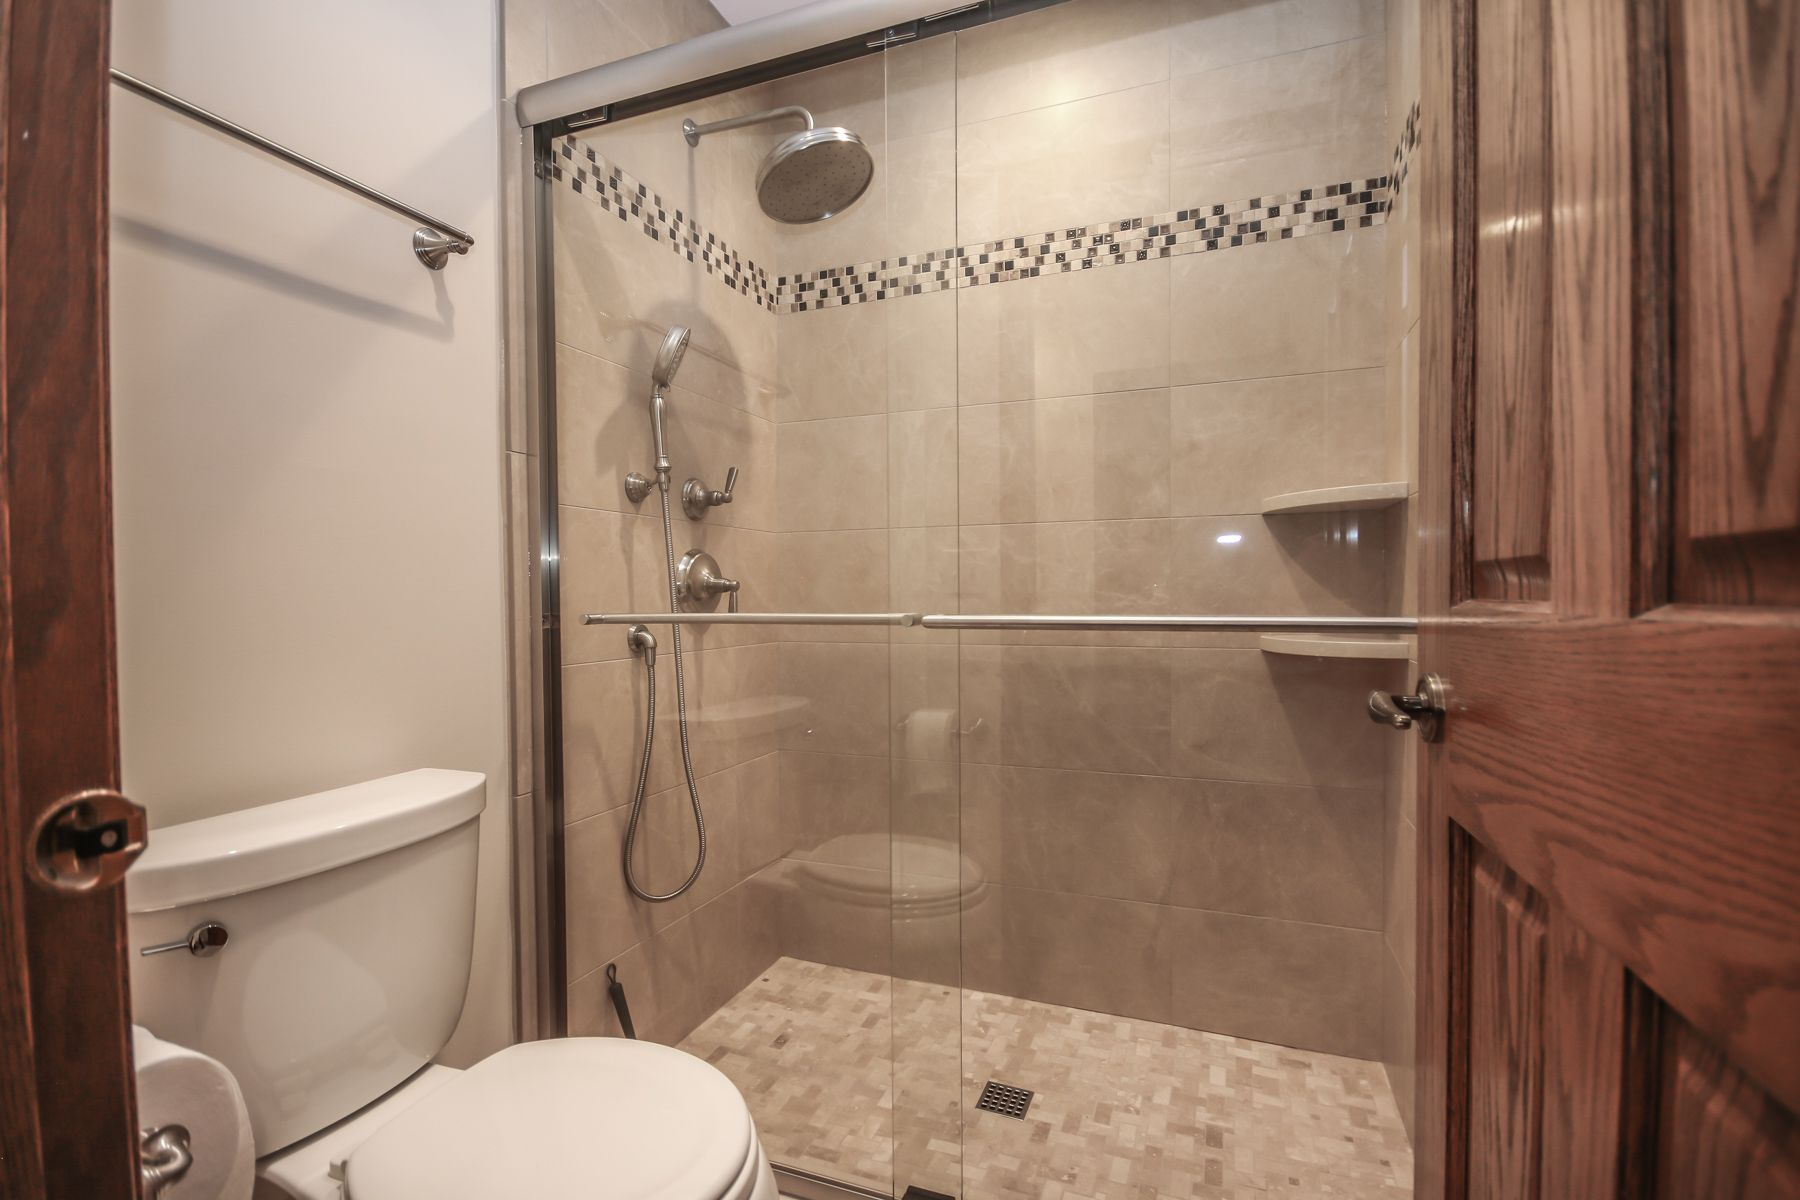 See The Before After Video Of These 3 Bathrooms On Our Youtube